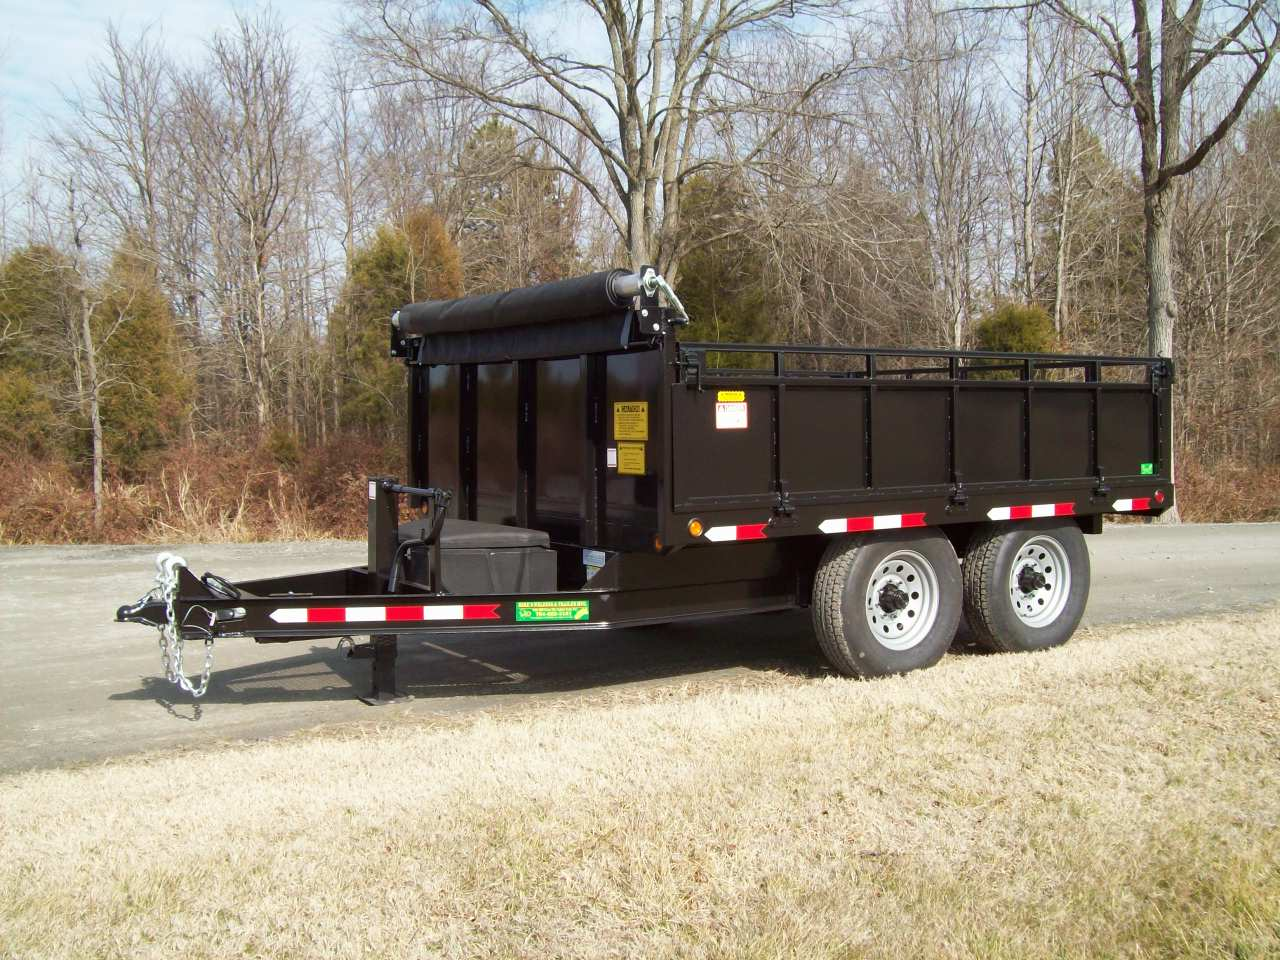 Mike S 8 X 10 Dump Trailer Mikes Welding Amp Trailer Mfg